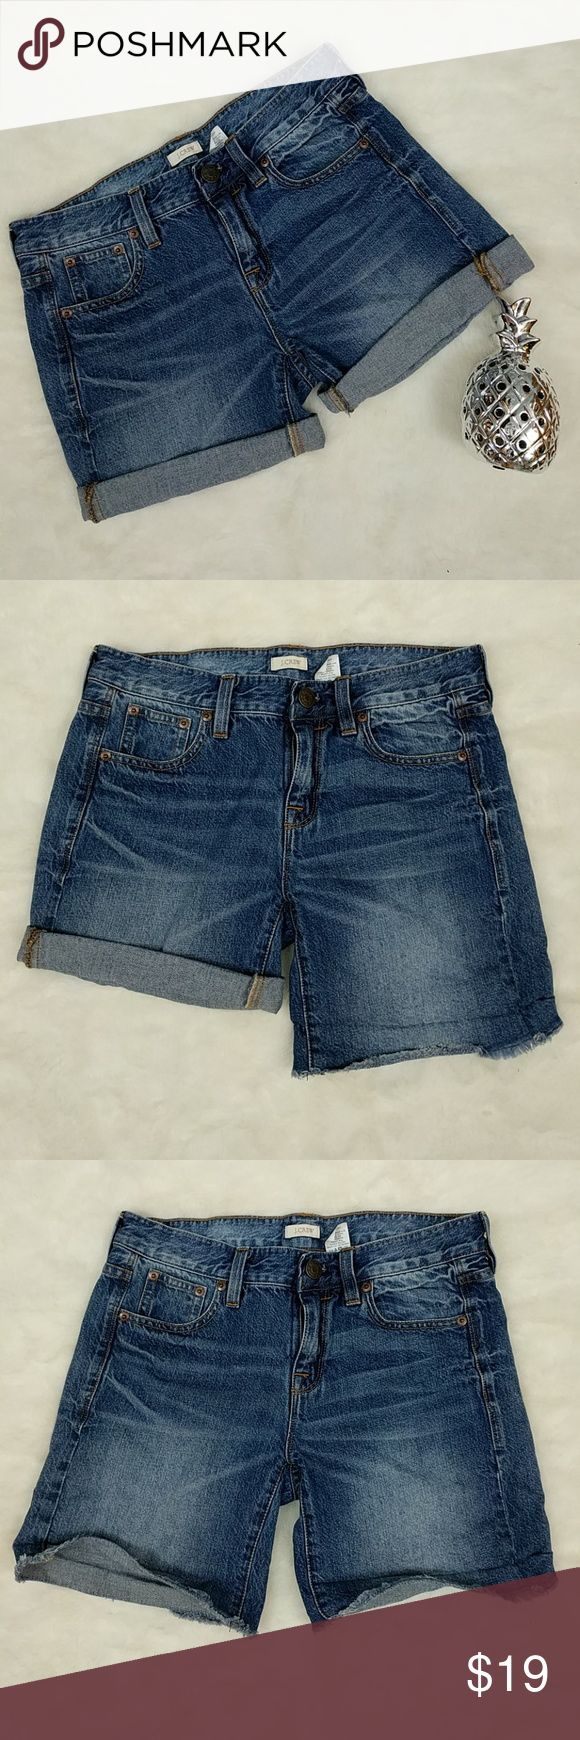 "J. Crew Cut Off Jean Shorts Medium blue wash and stressed jean shorts from J. Crew. Shorts have frayed appearance, but are sewn to prevent further fraying. Shorts are easily rolled up. Laying flat, and unrolled, shorts measure approximately 16"" across waist, 8"" rise, and 7"" inseam. J. Crew Shorts Jean Shorts"